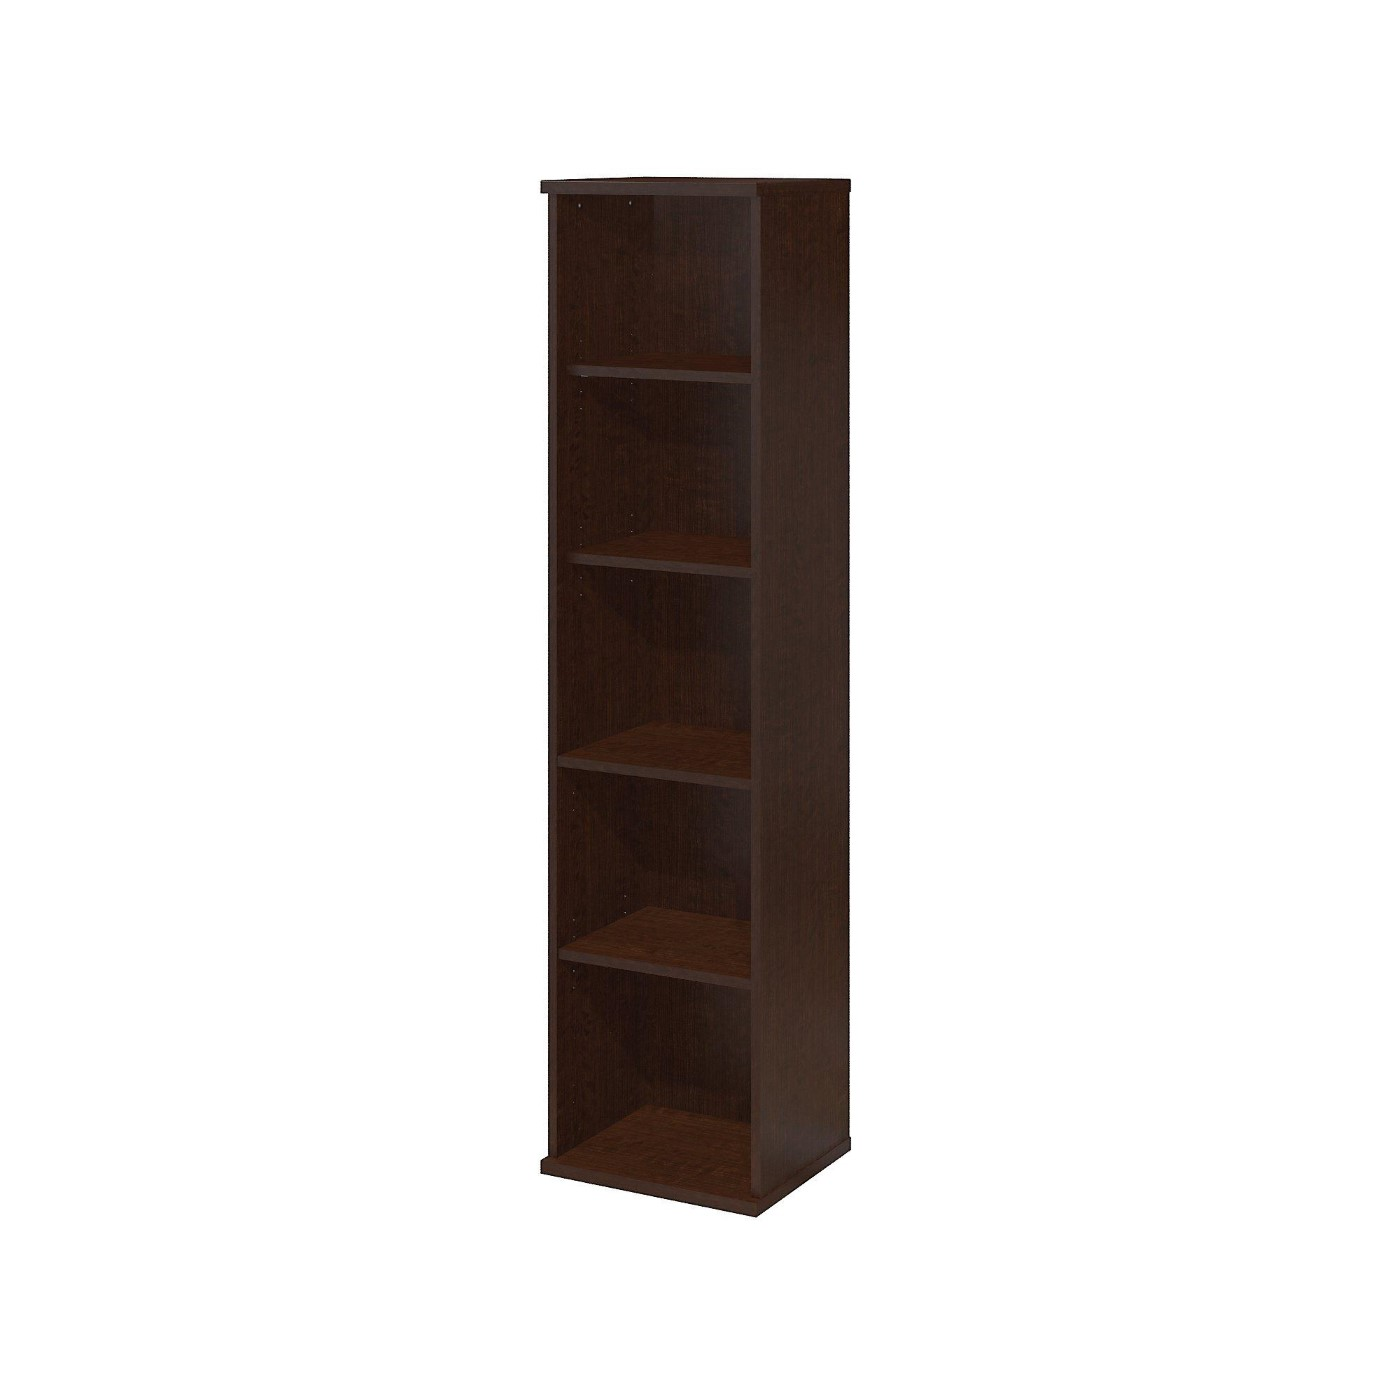 <font color=#c60><b>BUSH BUSINESS FURNITURE SERIES C 18W 5 SHELF BOOKCASE. FREE SHIPPING</font></b>